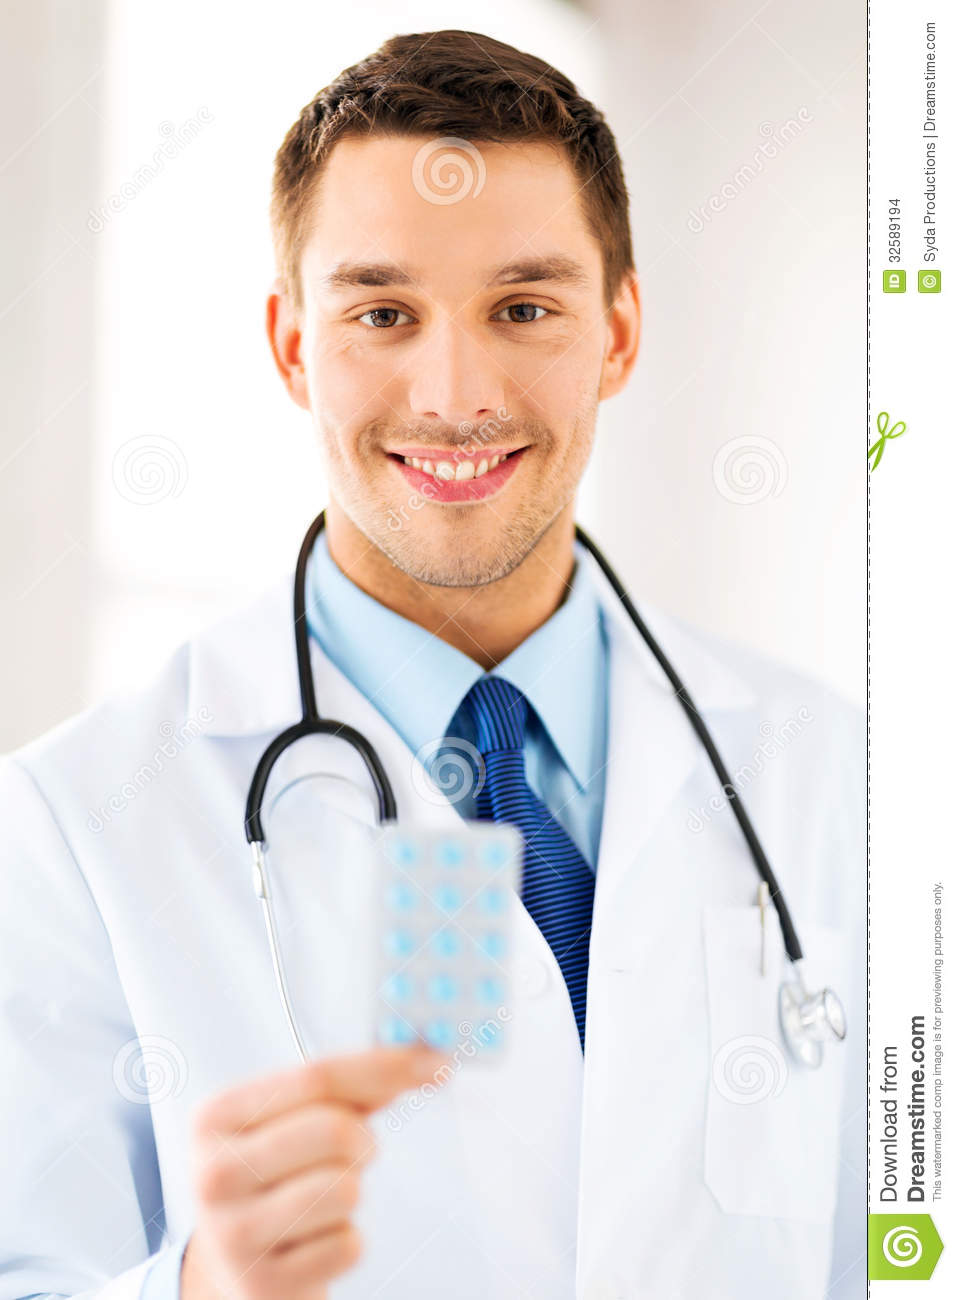 Young Male Doctor With Pack Of Pills Stock Images - Image: 32589194